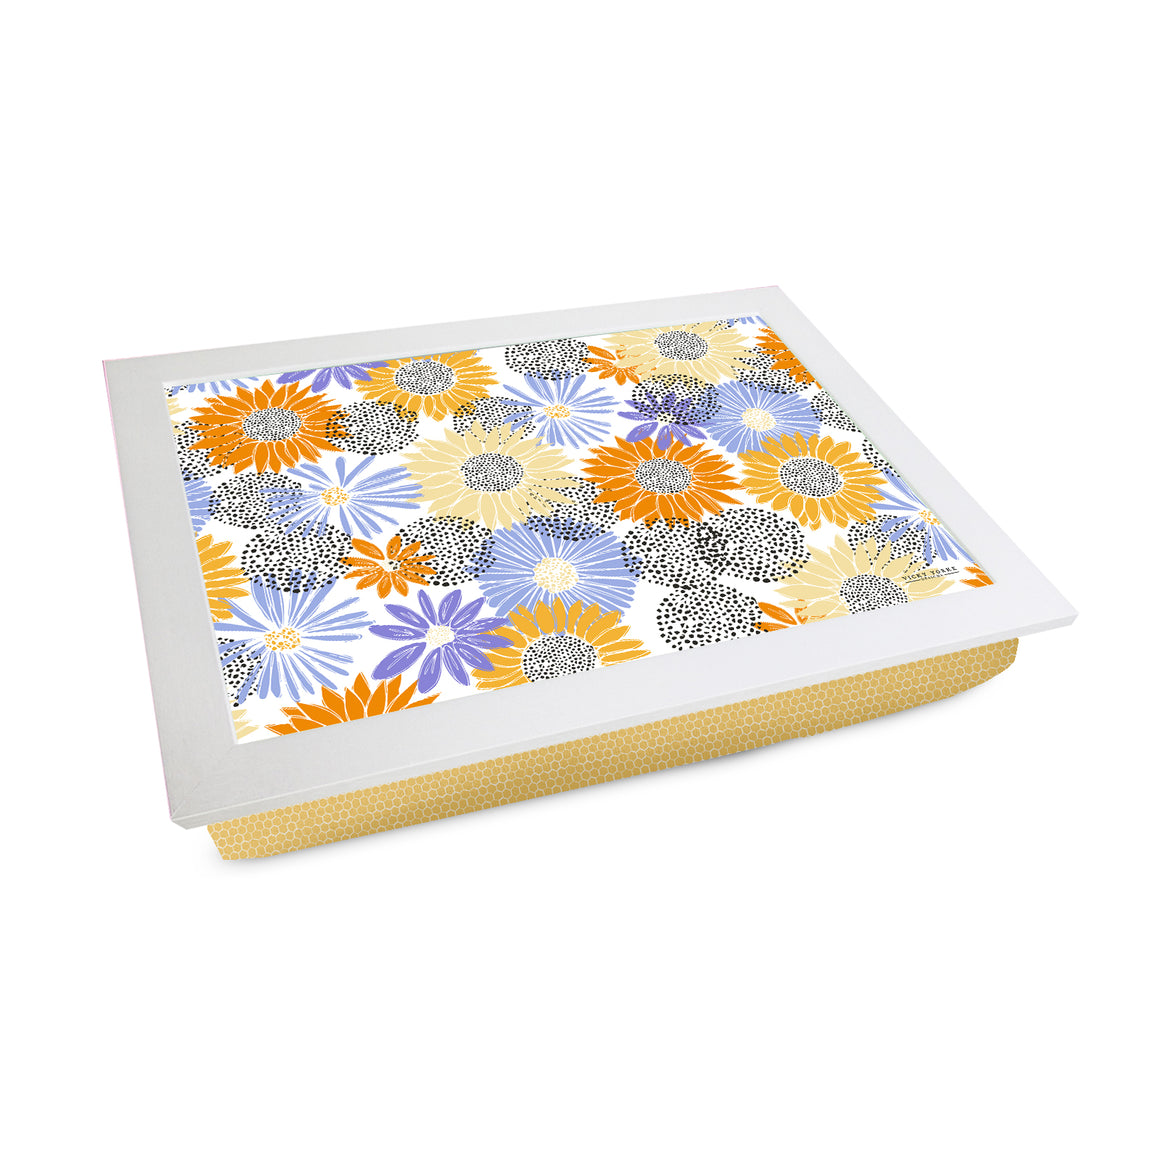 Bee Happy Flower Pattern Lap Tray by Vicky Yorke Designs